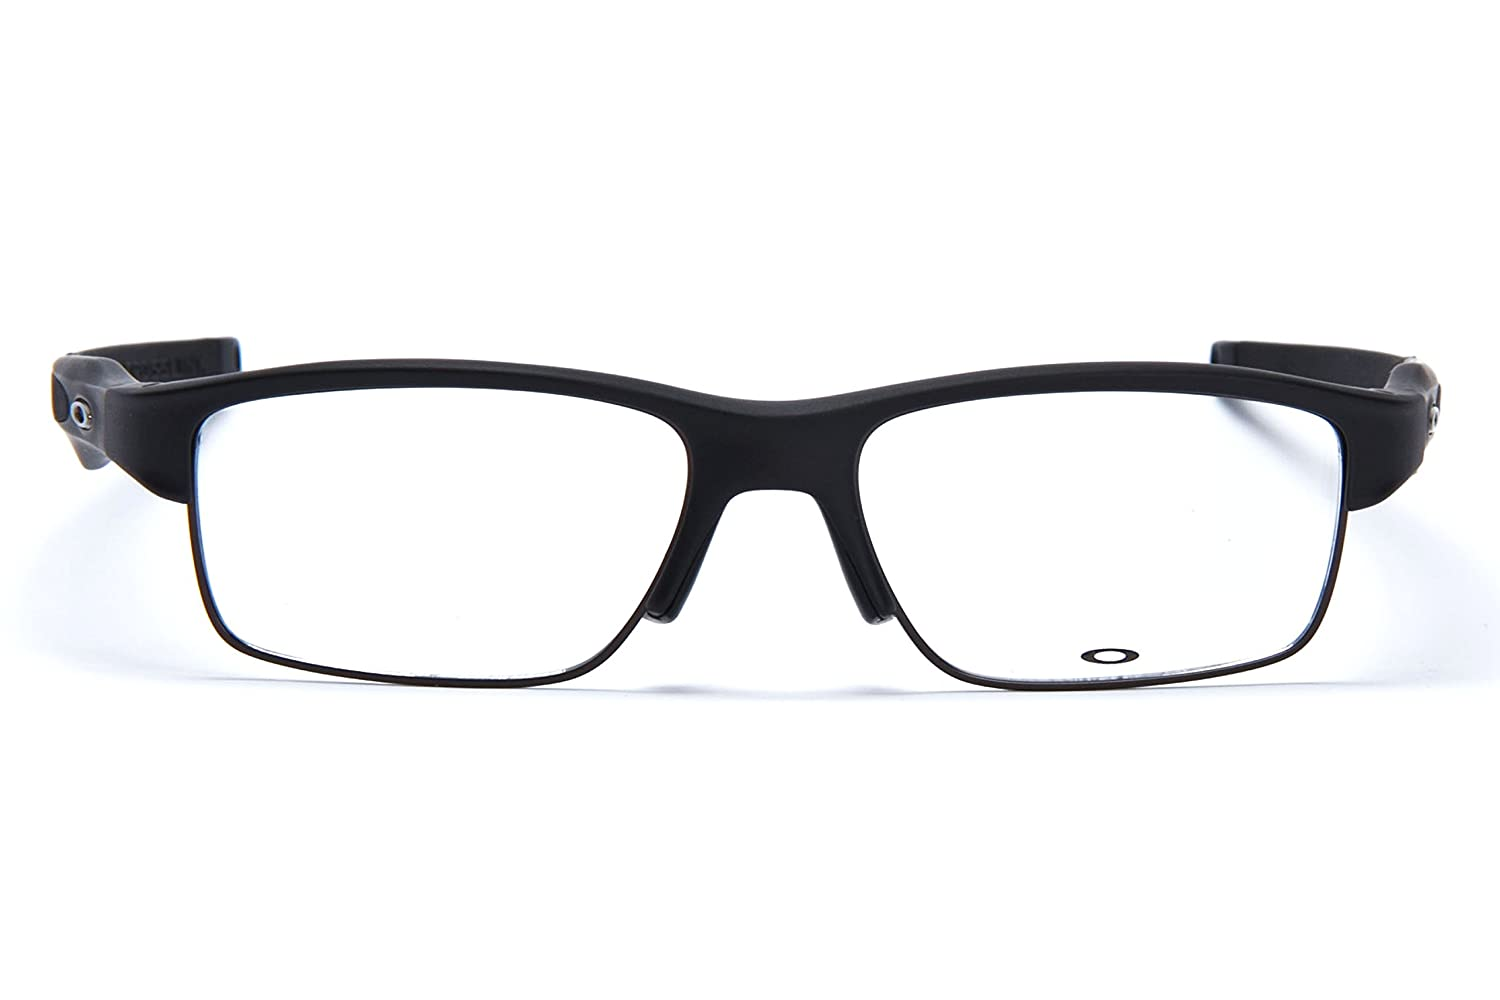 order oakley prescription glasses online sffw  Oakley Prescription Glasses for Men CROSSLINK SWITCH OX3150-0156 Satin Black